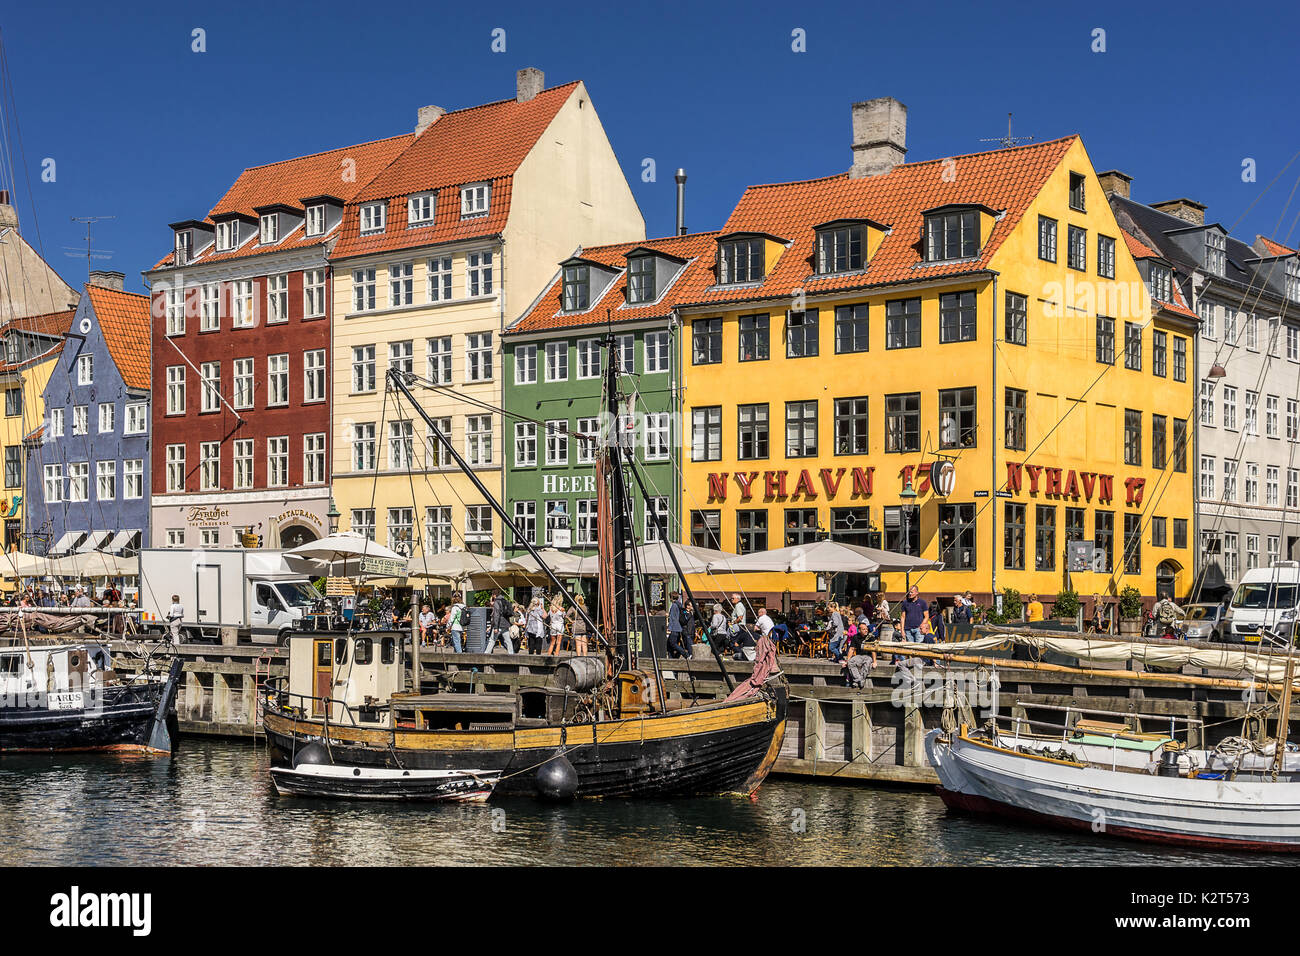 Nyhavn inner harbour in Copenhagen - Stock Image